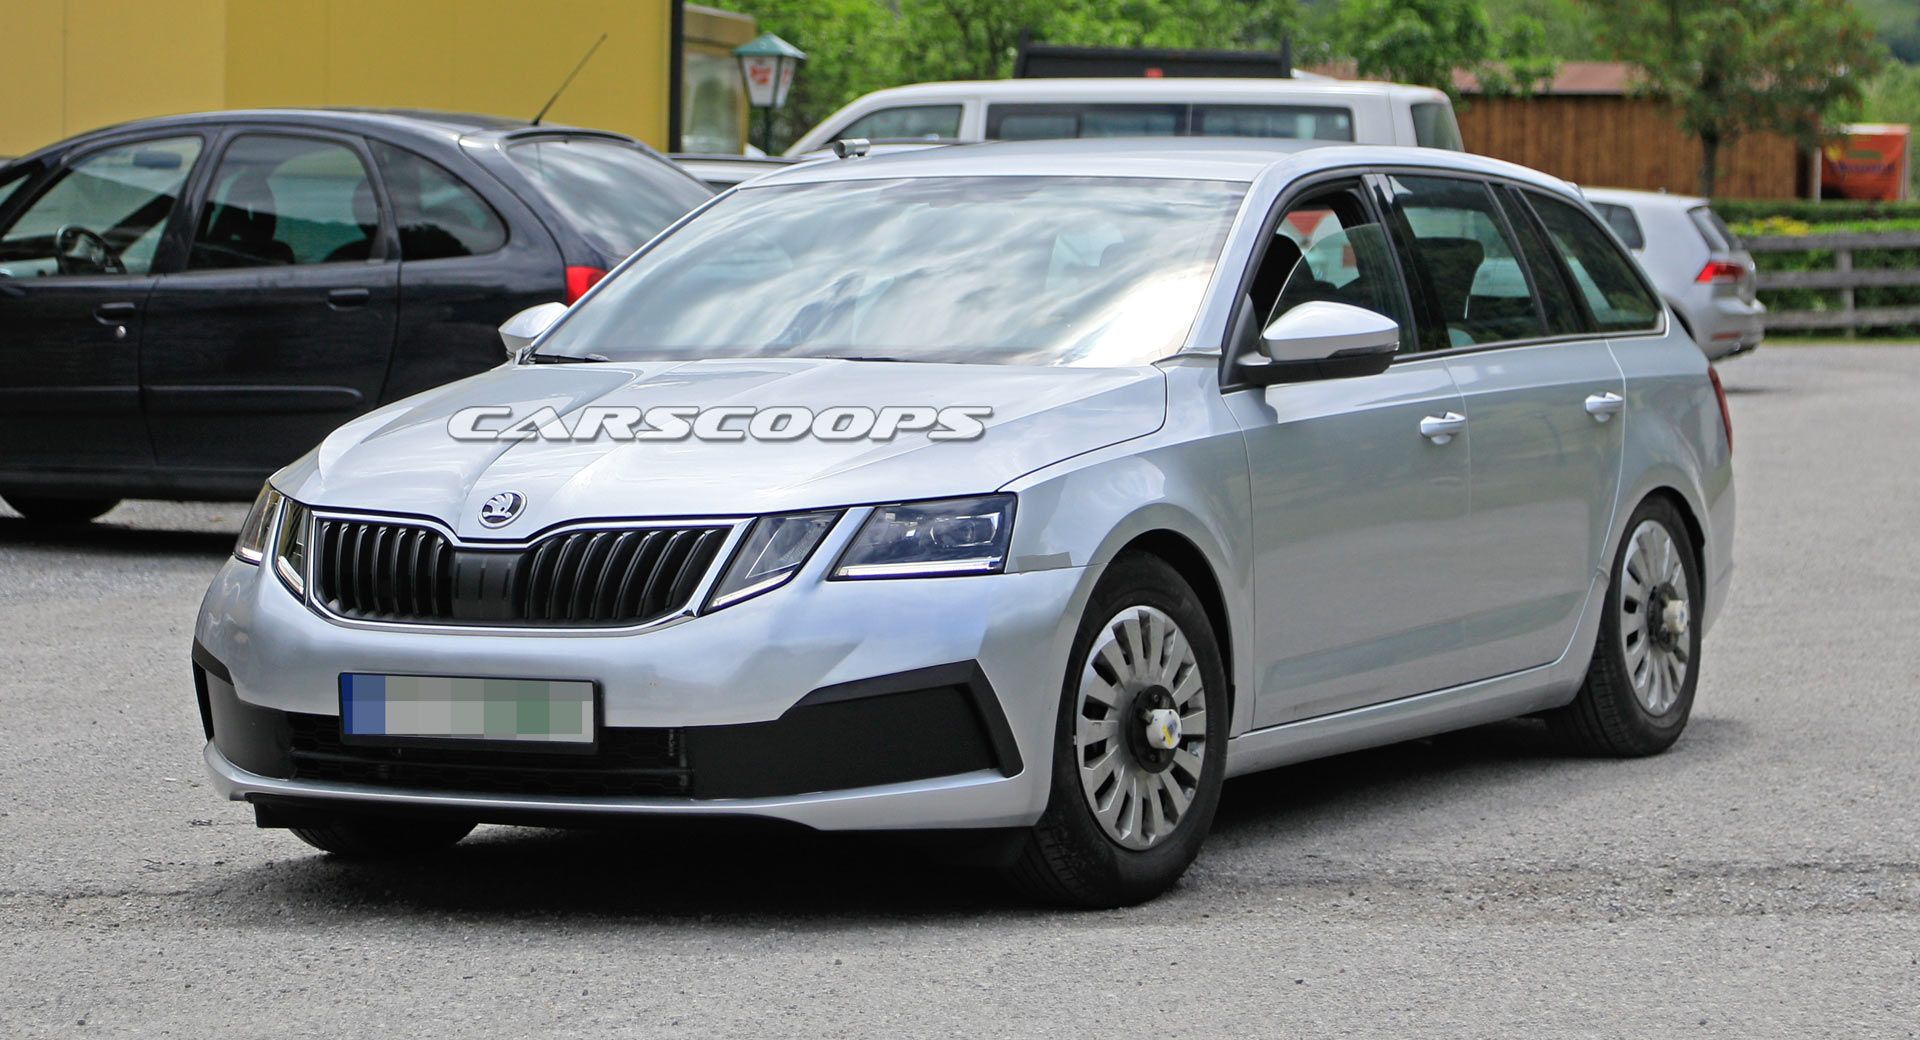 45 The Best Spy Shots Skoda Superb Release Date